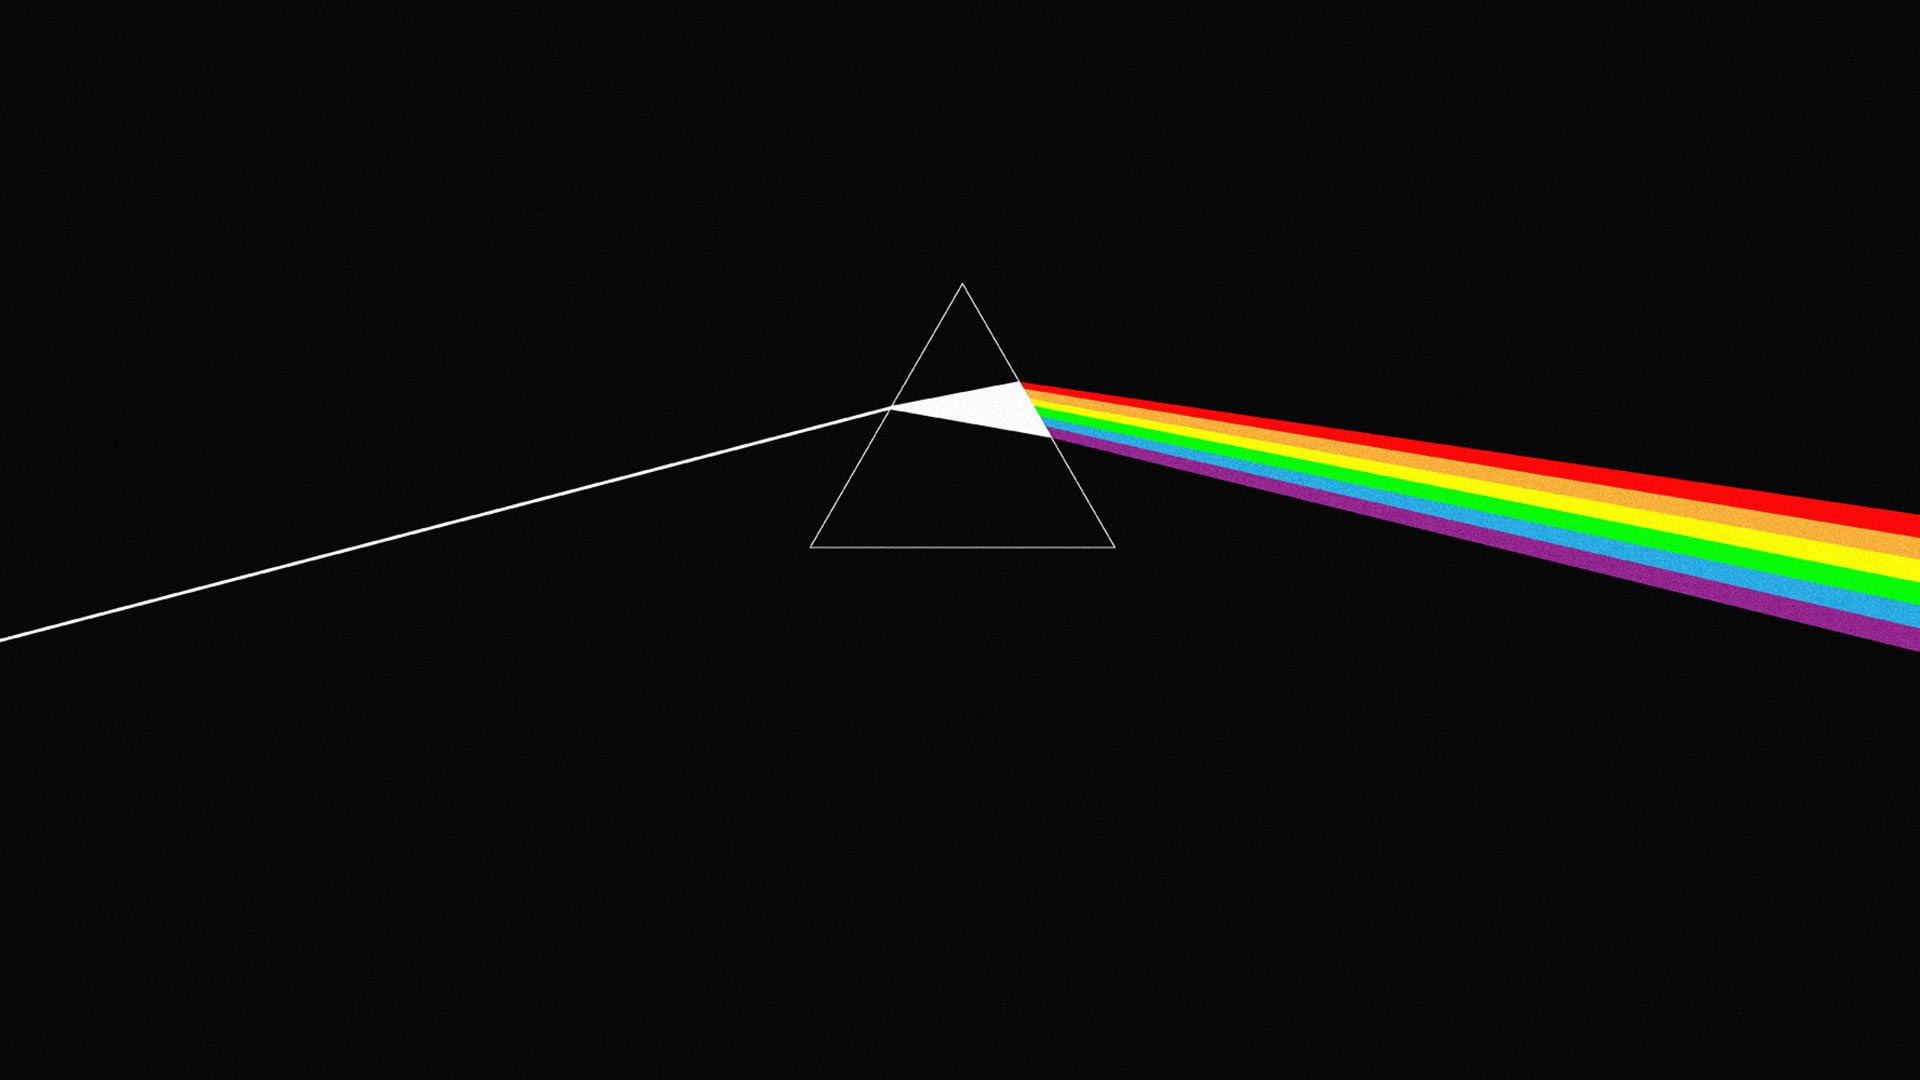 dark side of the moon Lyrics to dark side of the moon song by machine gun kelly: the dark side of the moon looks like an only child who can't fit into place the dark side of the moo.